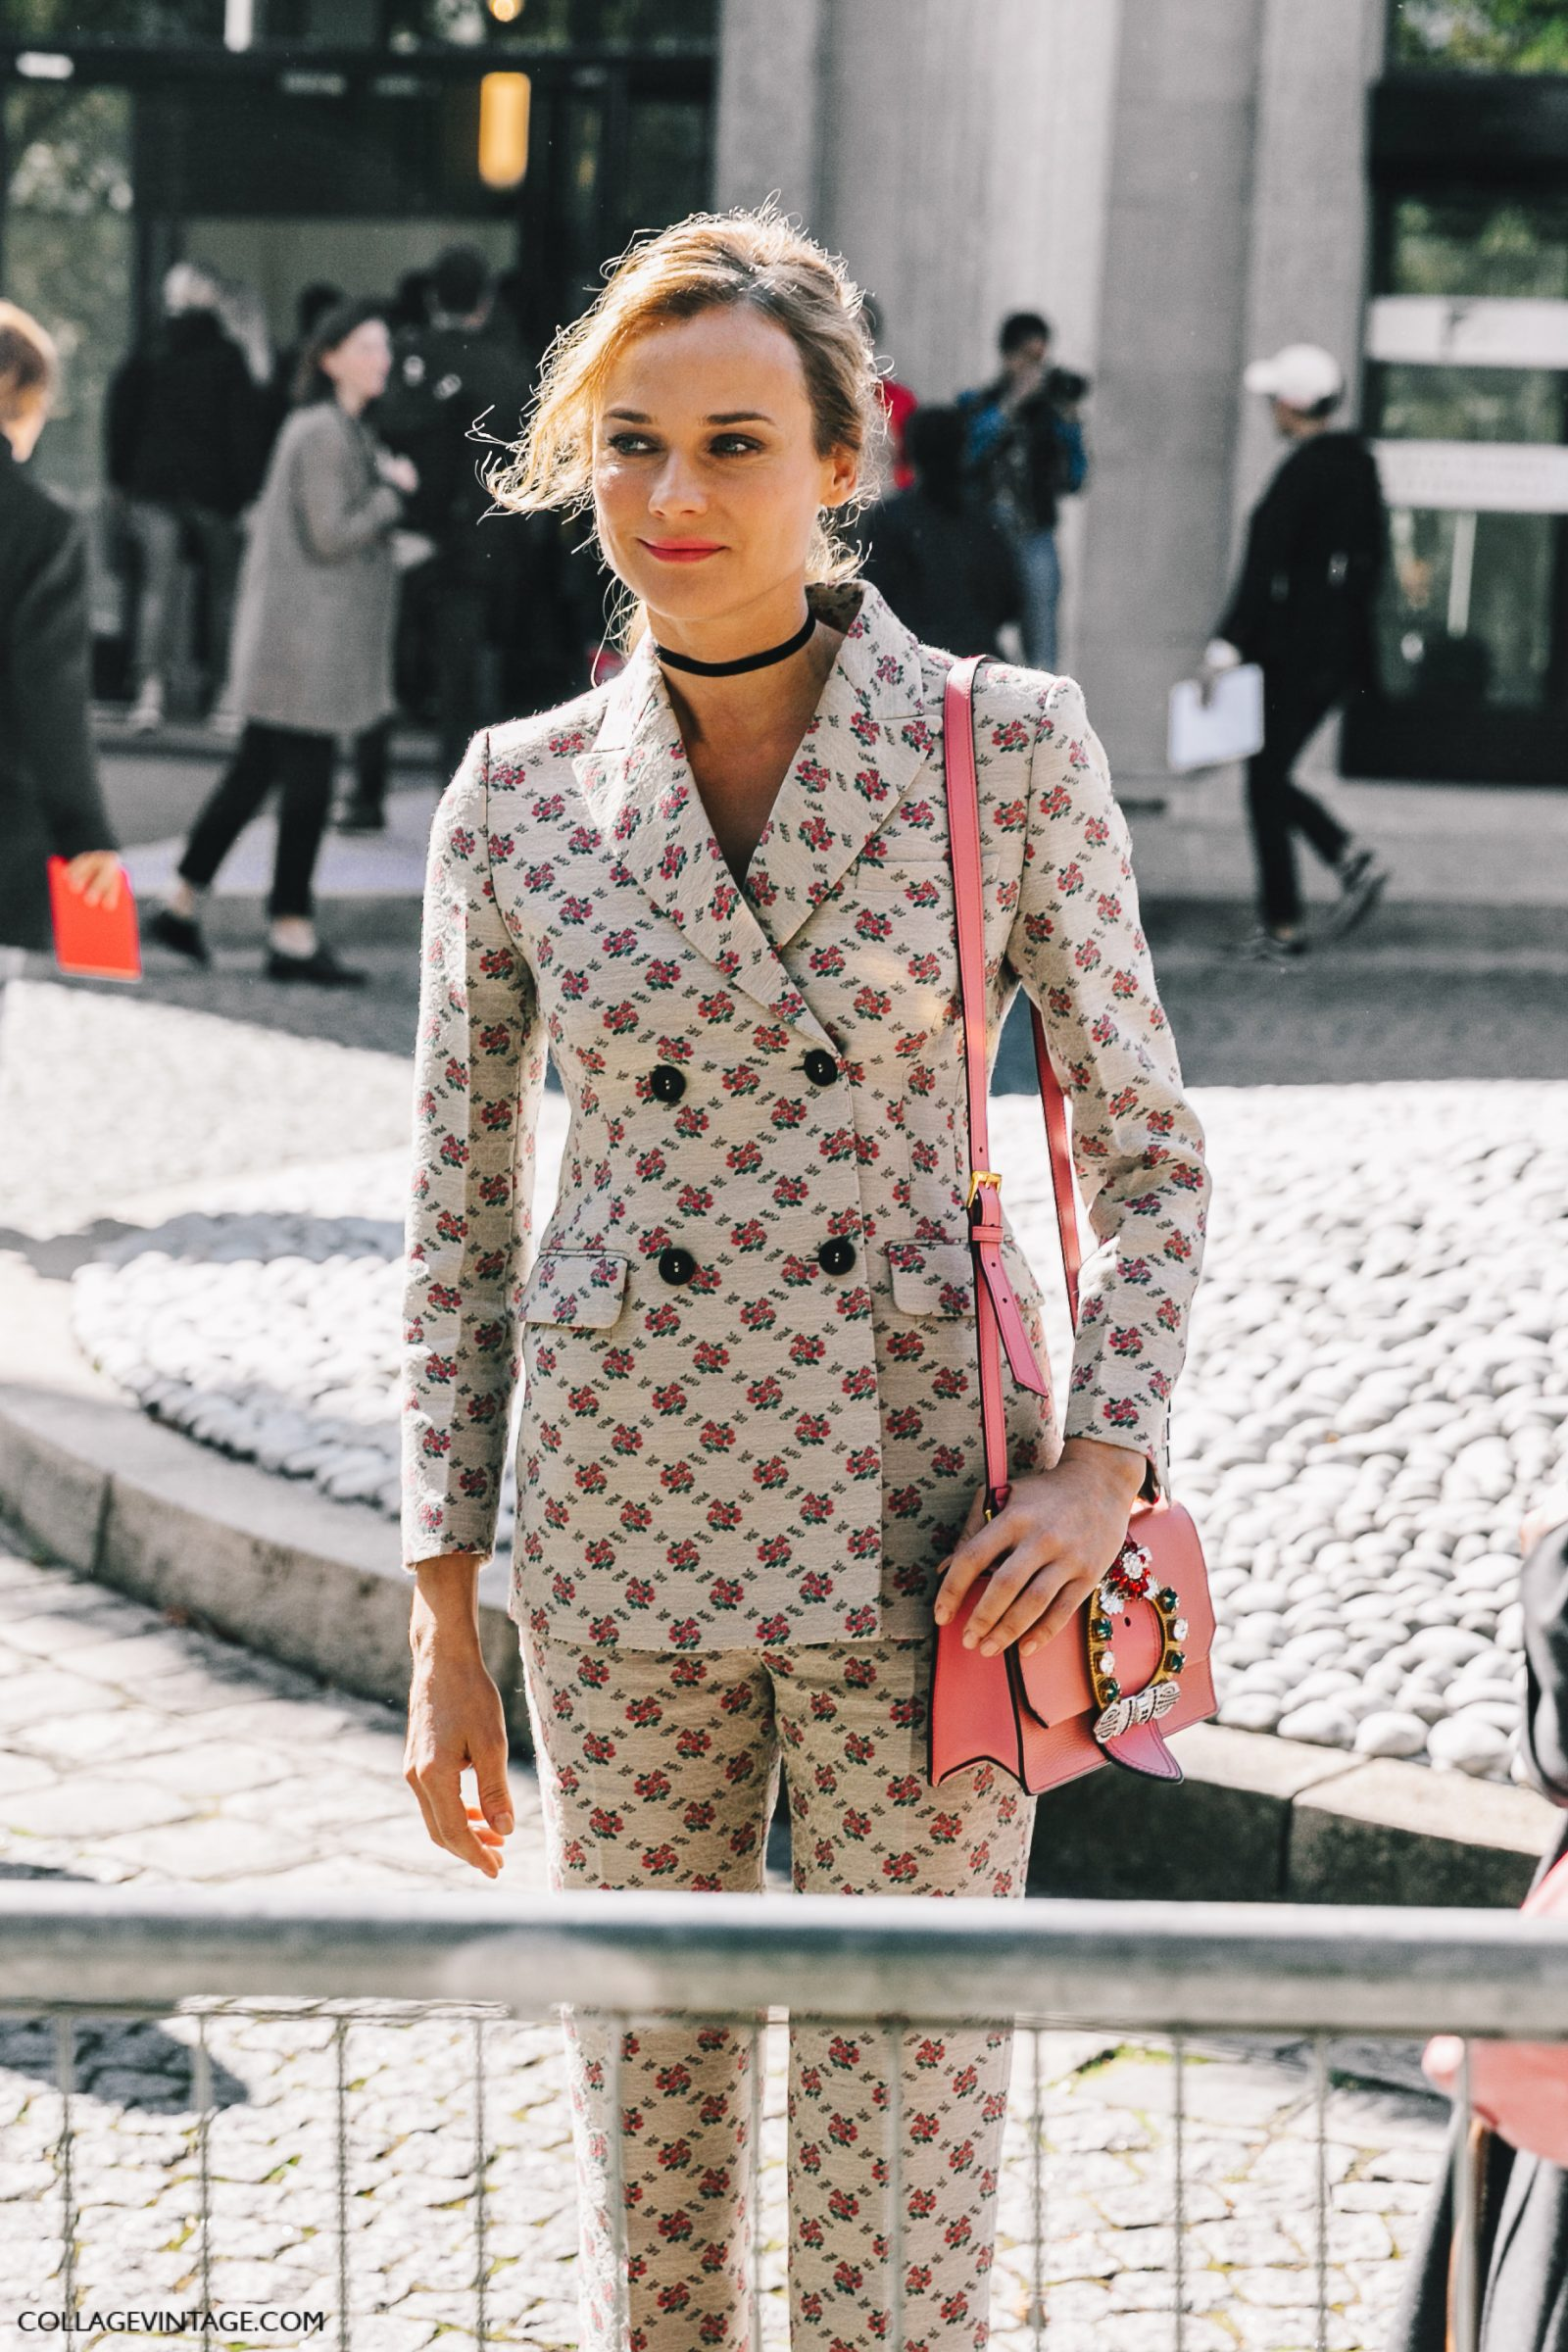 pfw-paris_fashion_week_ss17-street_style-outfit-collage_vintage-louis_vuitton-miu_miu-75